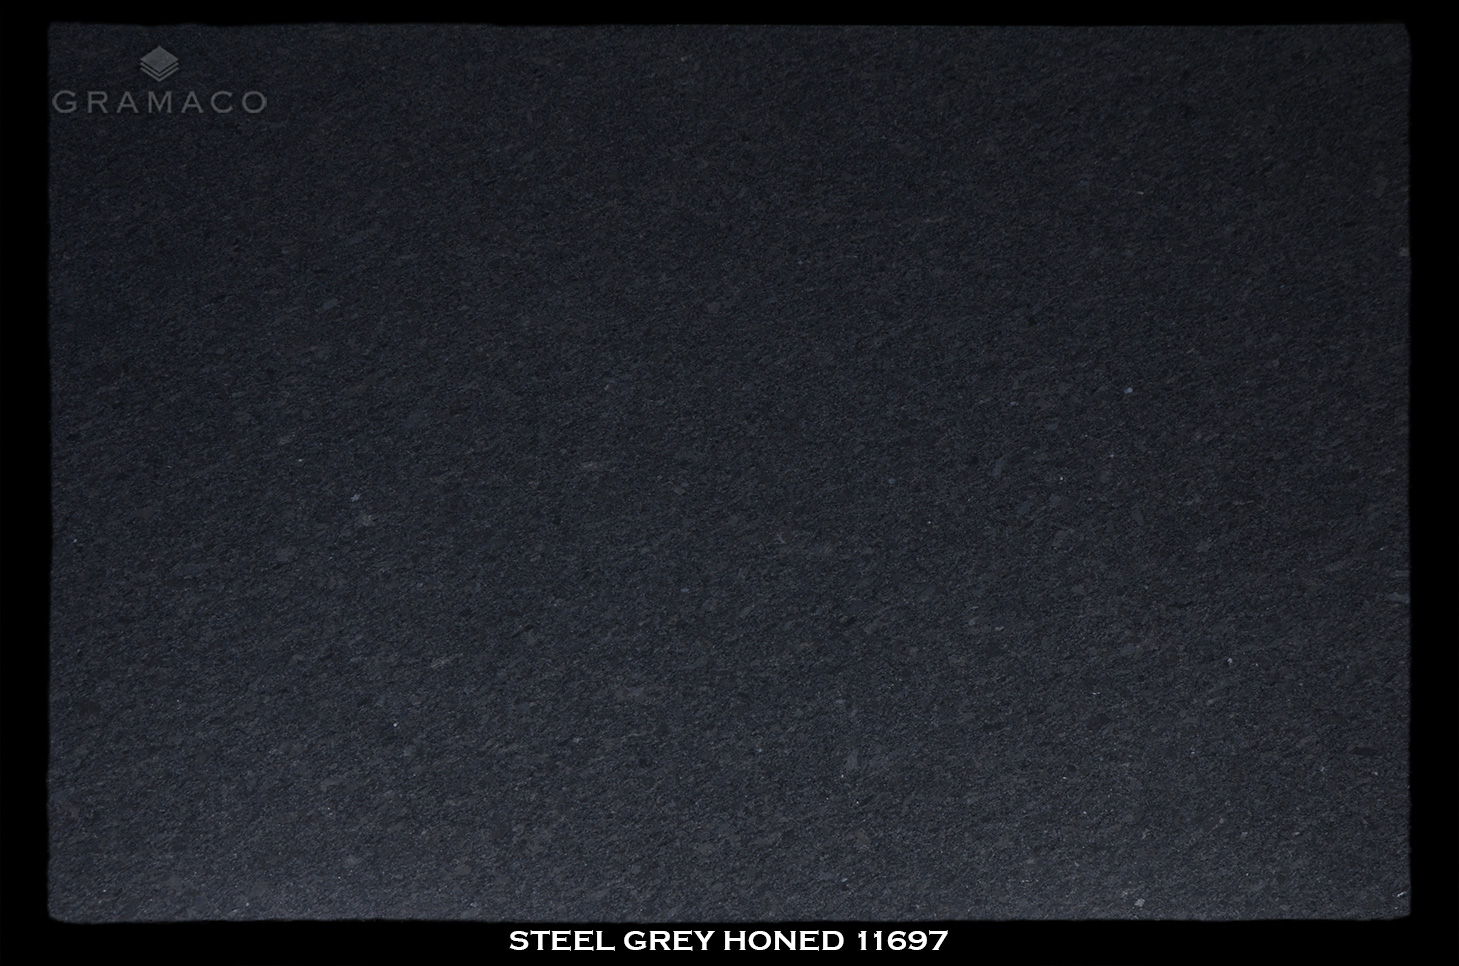 STEEL-GREY-HONED-11697-slab